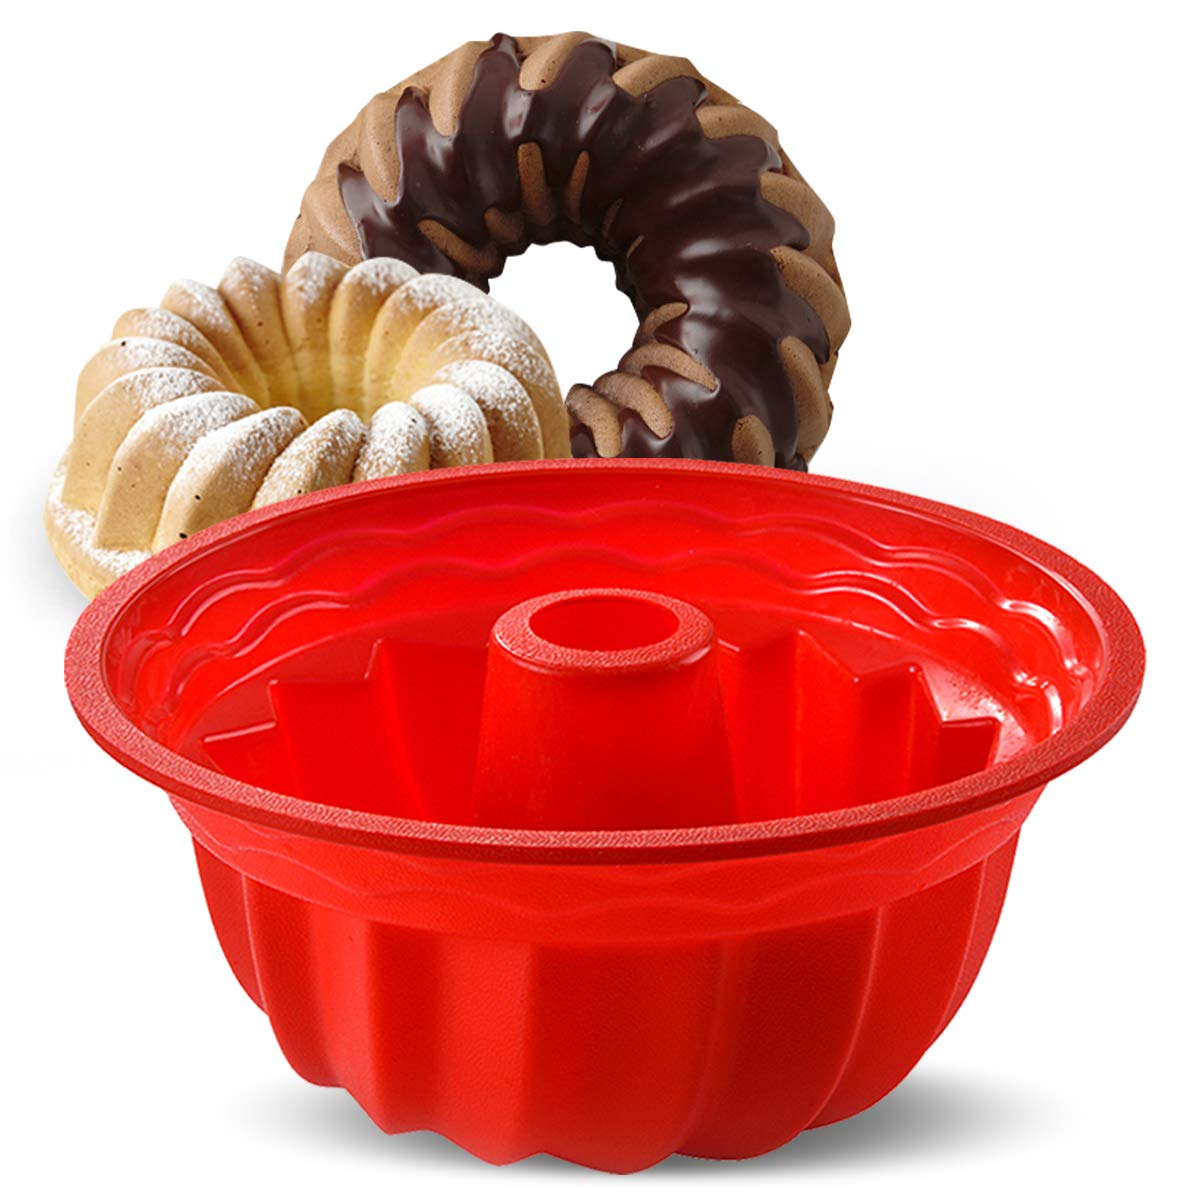 Aokinle Silicone Baking Molds, European Grade Fluted Round Cake Pan, Non-Stick Cake Pan for Jello, Mousse,Cake,Gelatin,Bread, 9.45 Inches Tube Bakeware Red by Aokinle